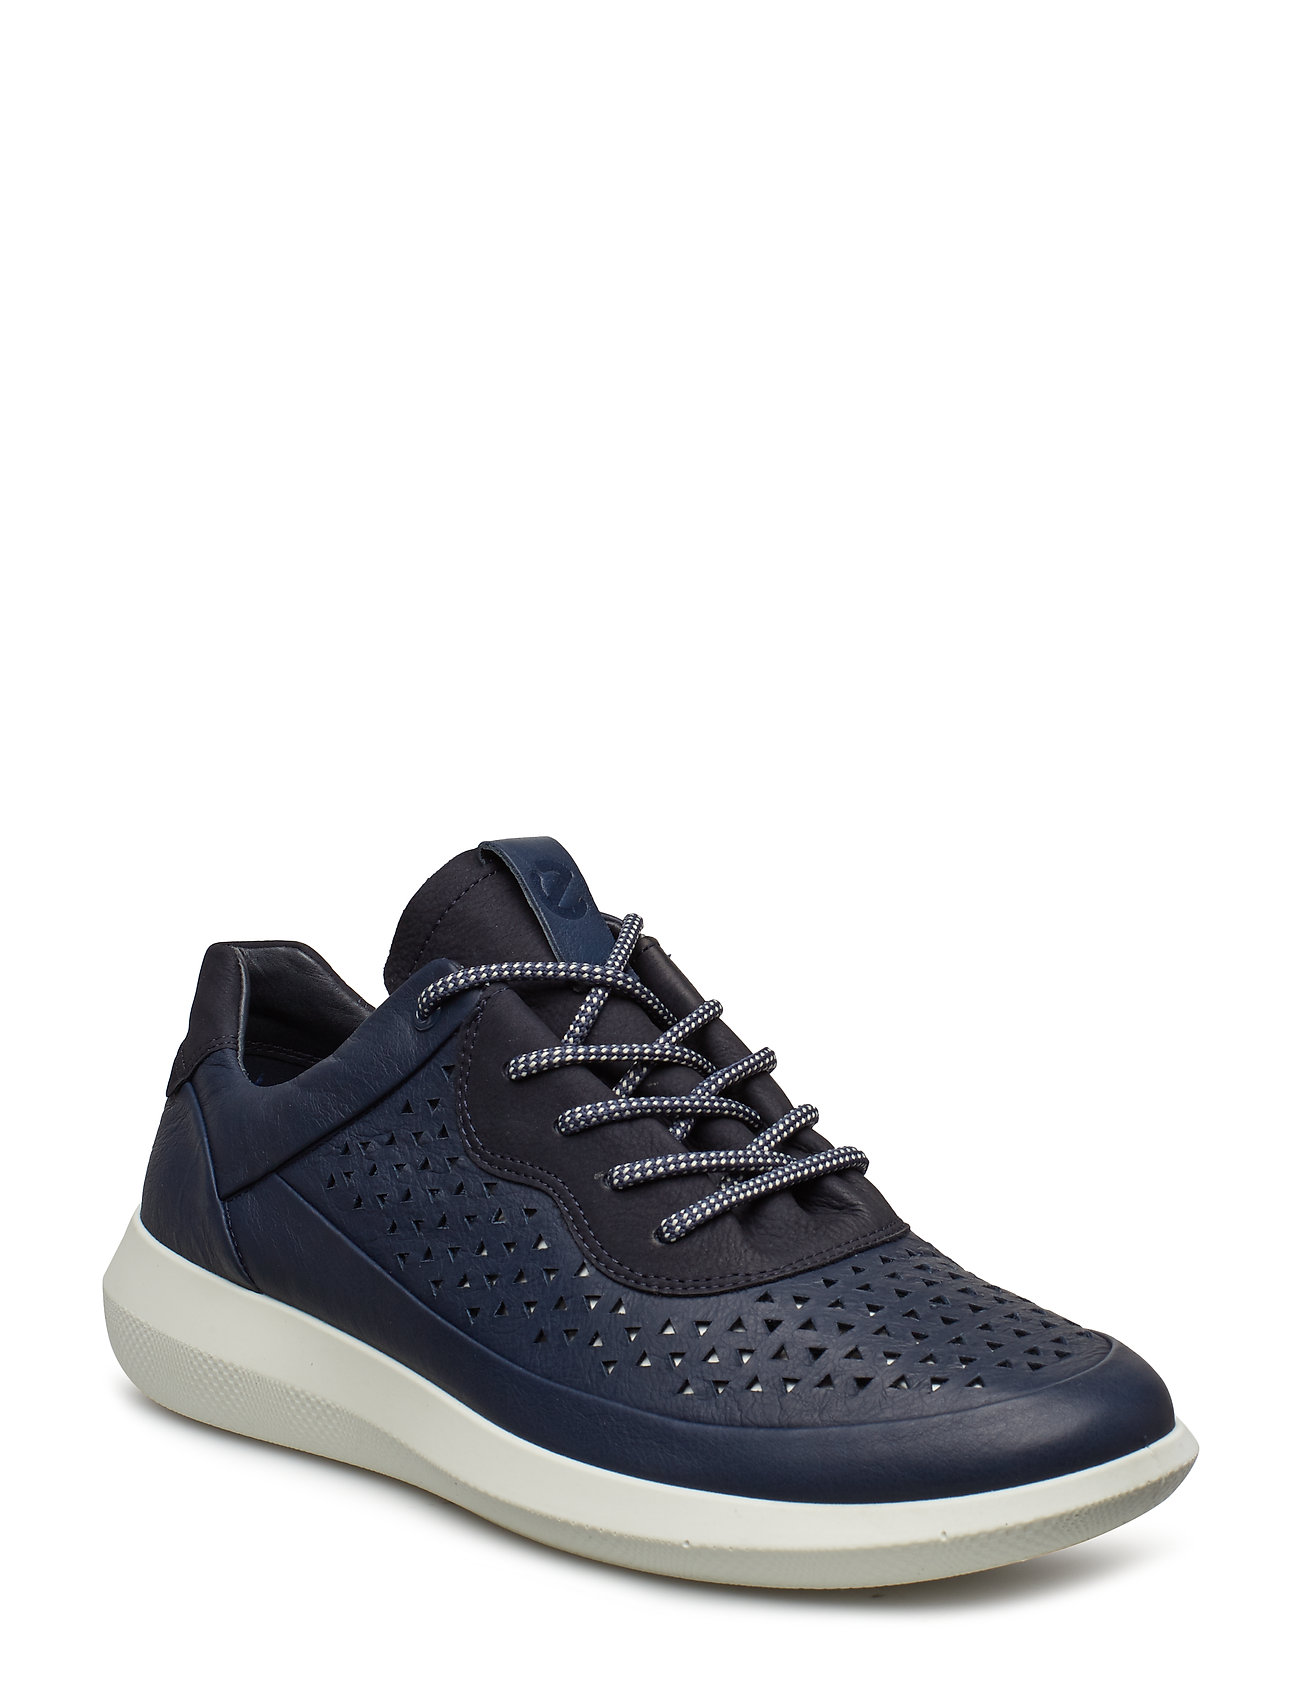 Image of Scinapse Low-top Sneakers Blå ECCO (3125213051)